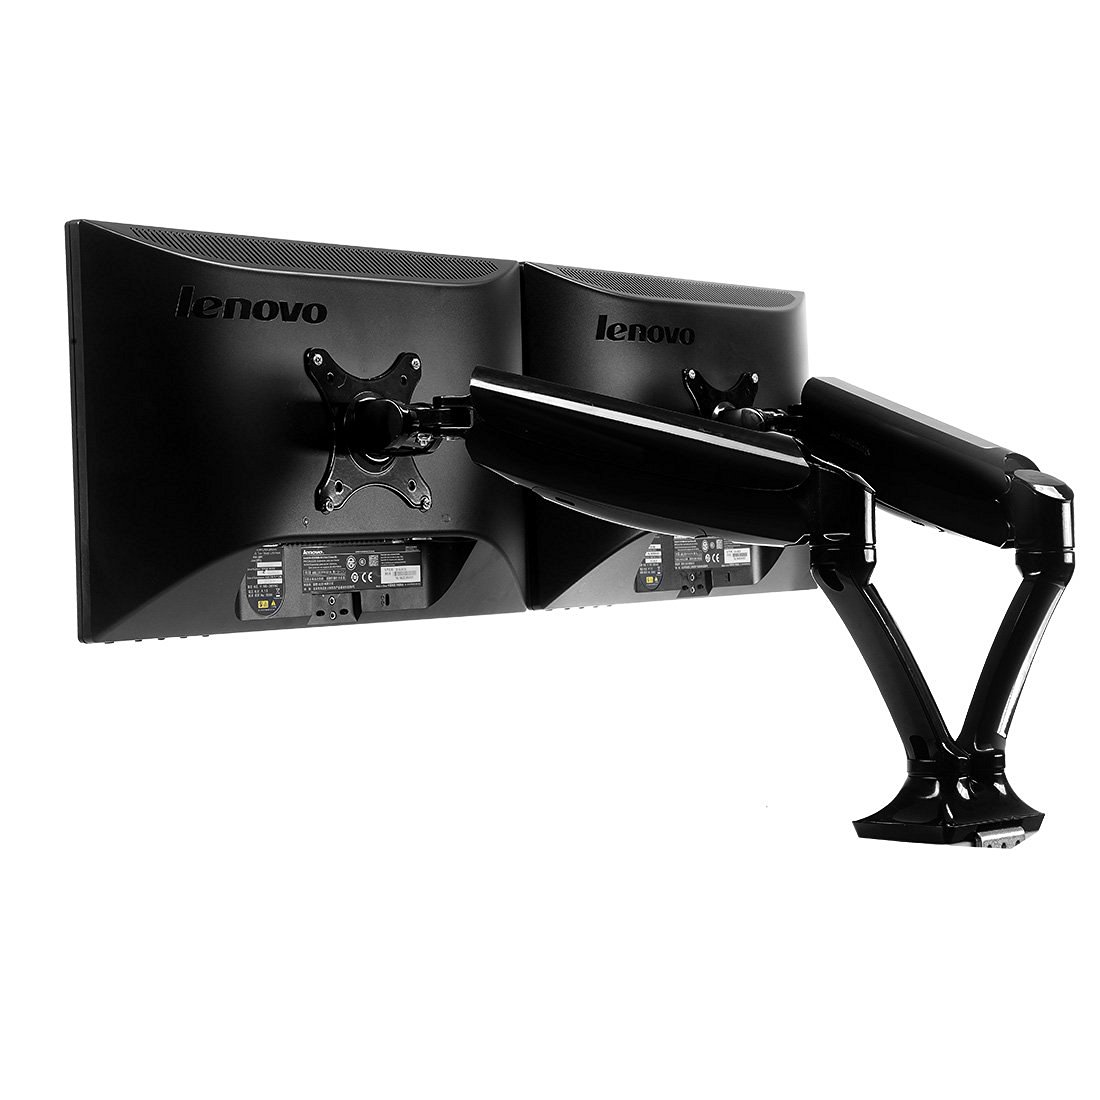 Fleximounts Heavy Duty Dual Arm Monitor Stand ,Full Motion Desk Monitor Mount with Swivel Gas Spring Monitor Arm,8.8-22 lbs Weight-bearing/per arm fit most 10''-27'' Samsung/LG/HP/AOC/Dell/Asus/Acer LCD Computer Monitor